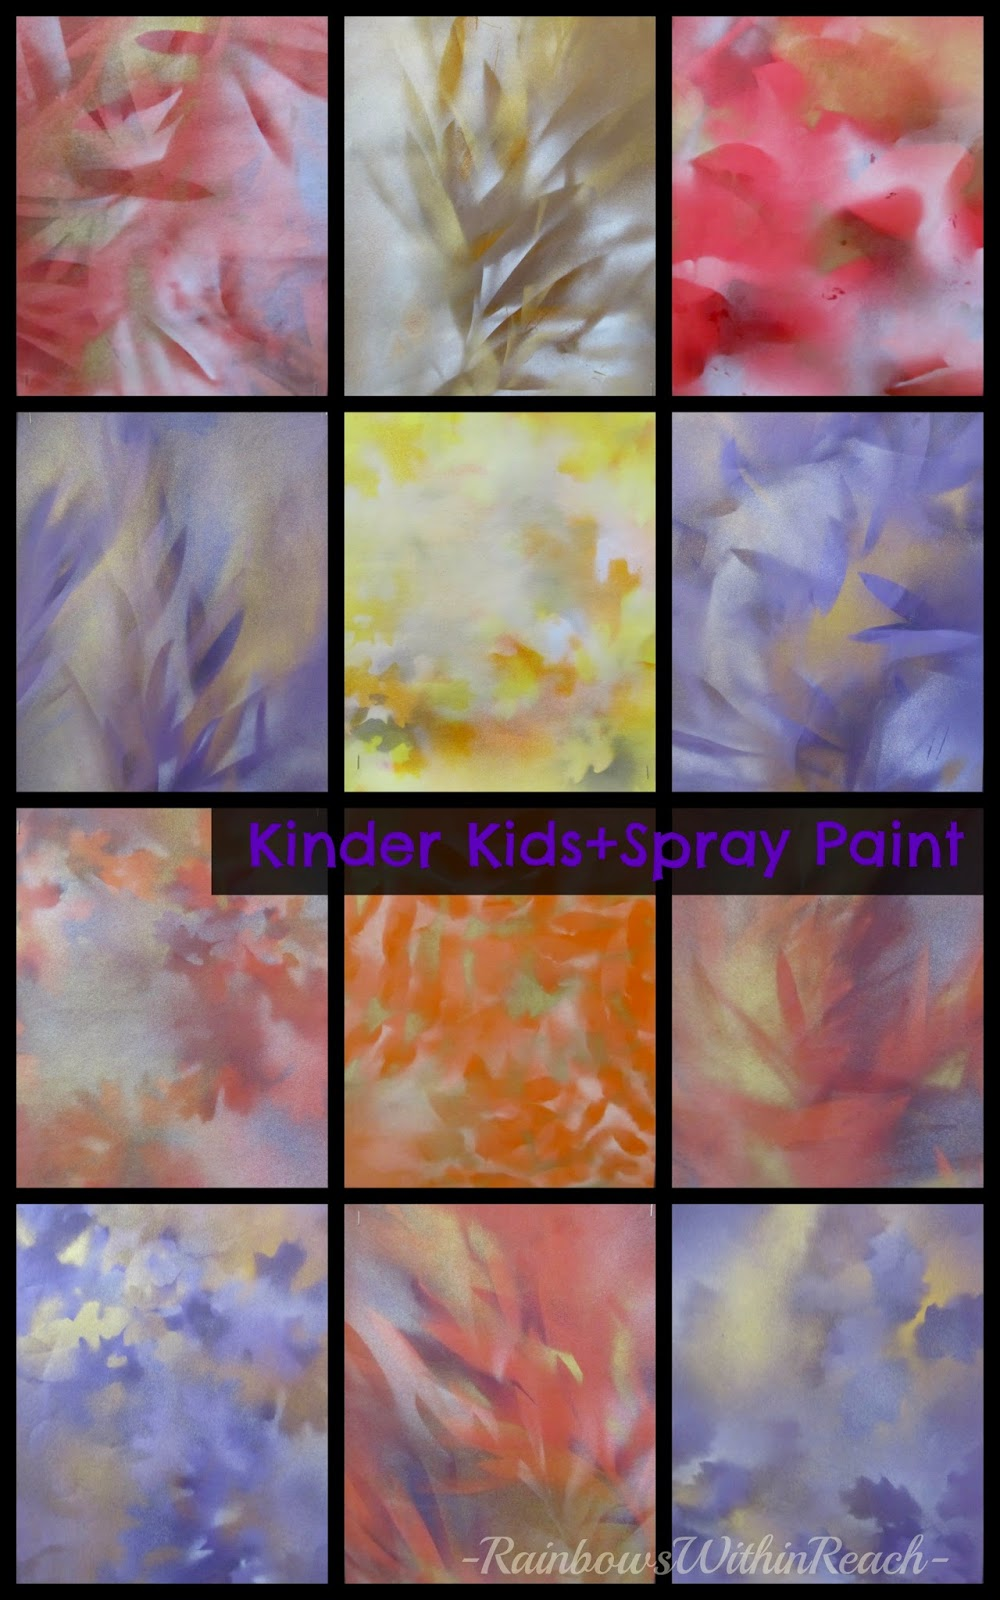 Kindergarten SPRAY-Painted Nature Stems: Works of Art at RainbowsWithinReach